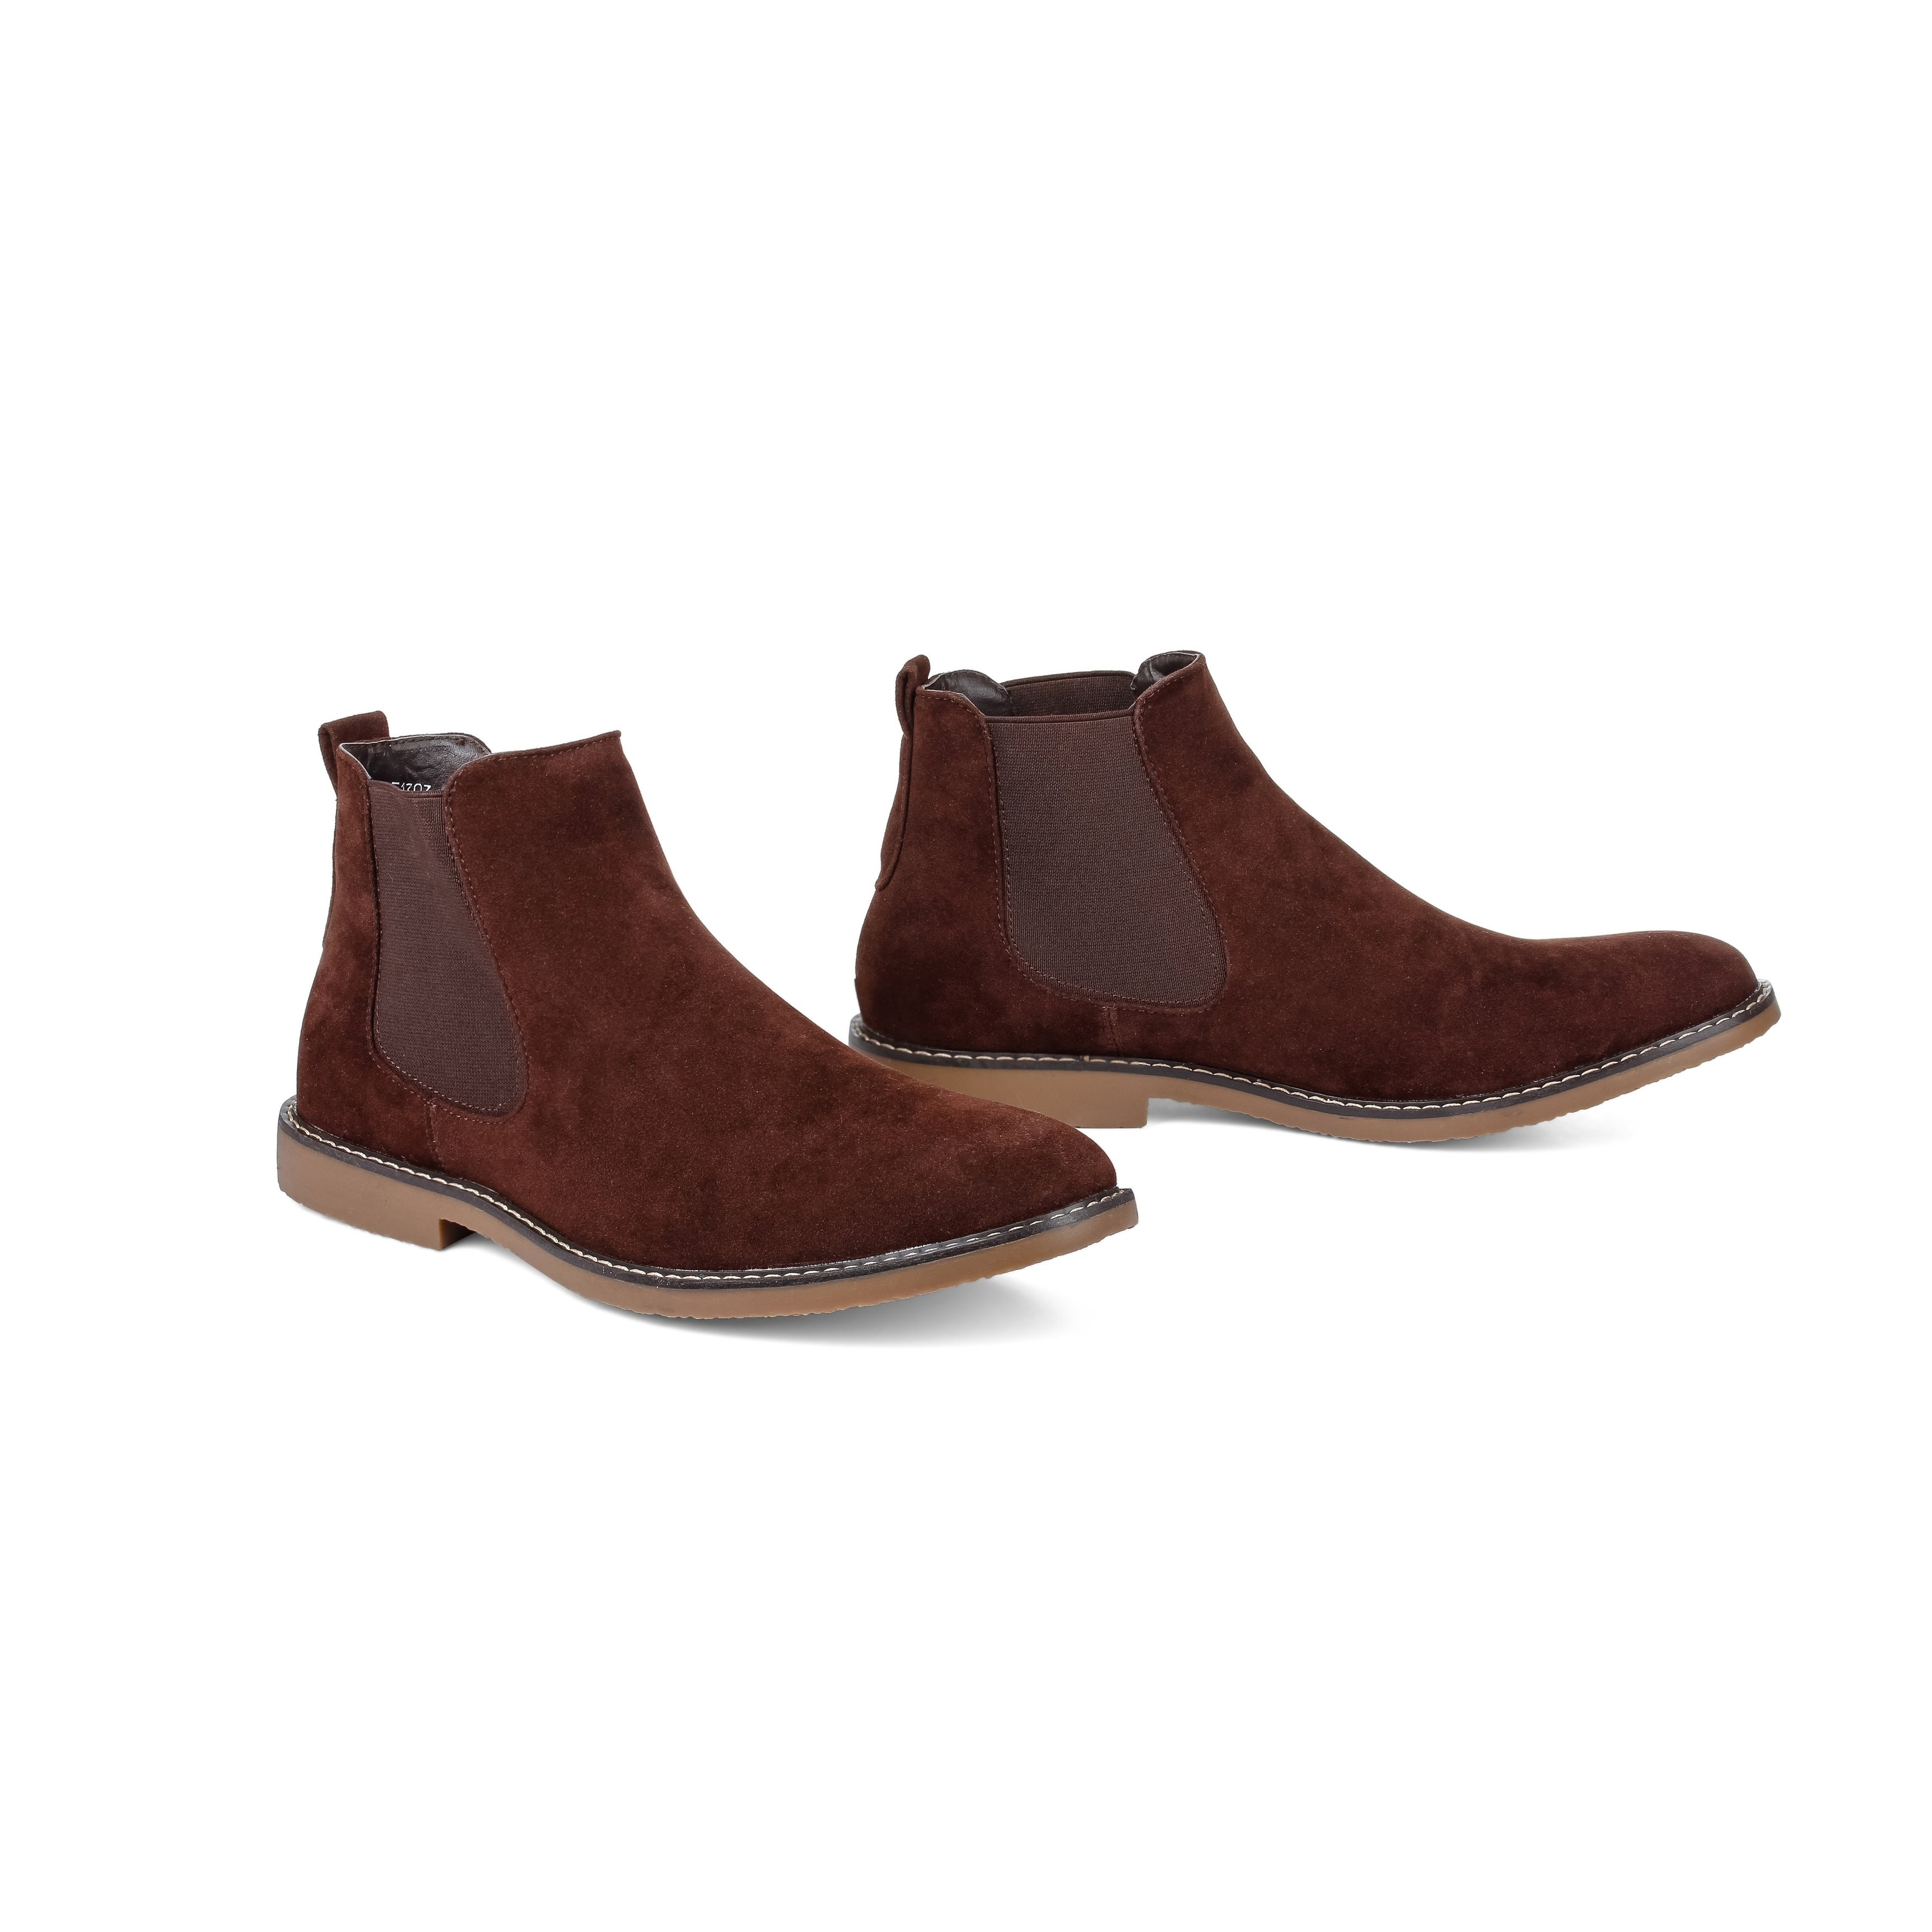 343d1919c Shop Miko Lotti Men's Suede Ankle Chelsea Boots - On Sale - Free Shipping  Today - Overstock - 20664774